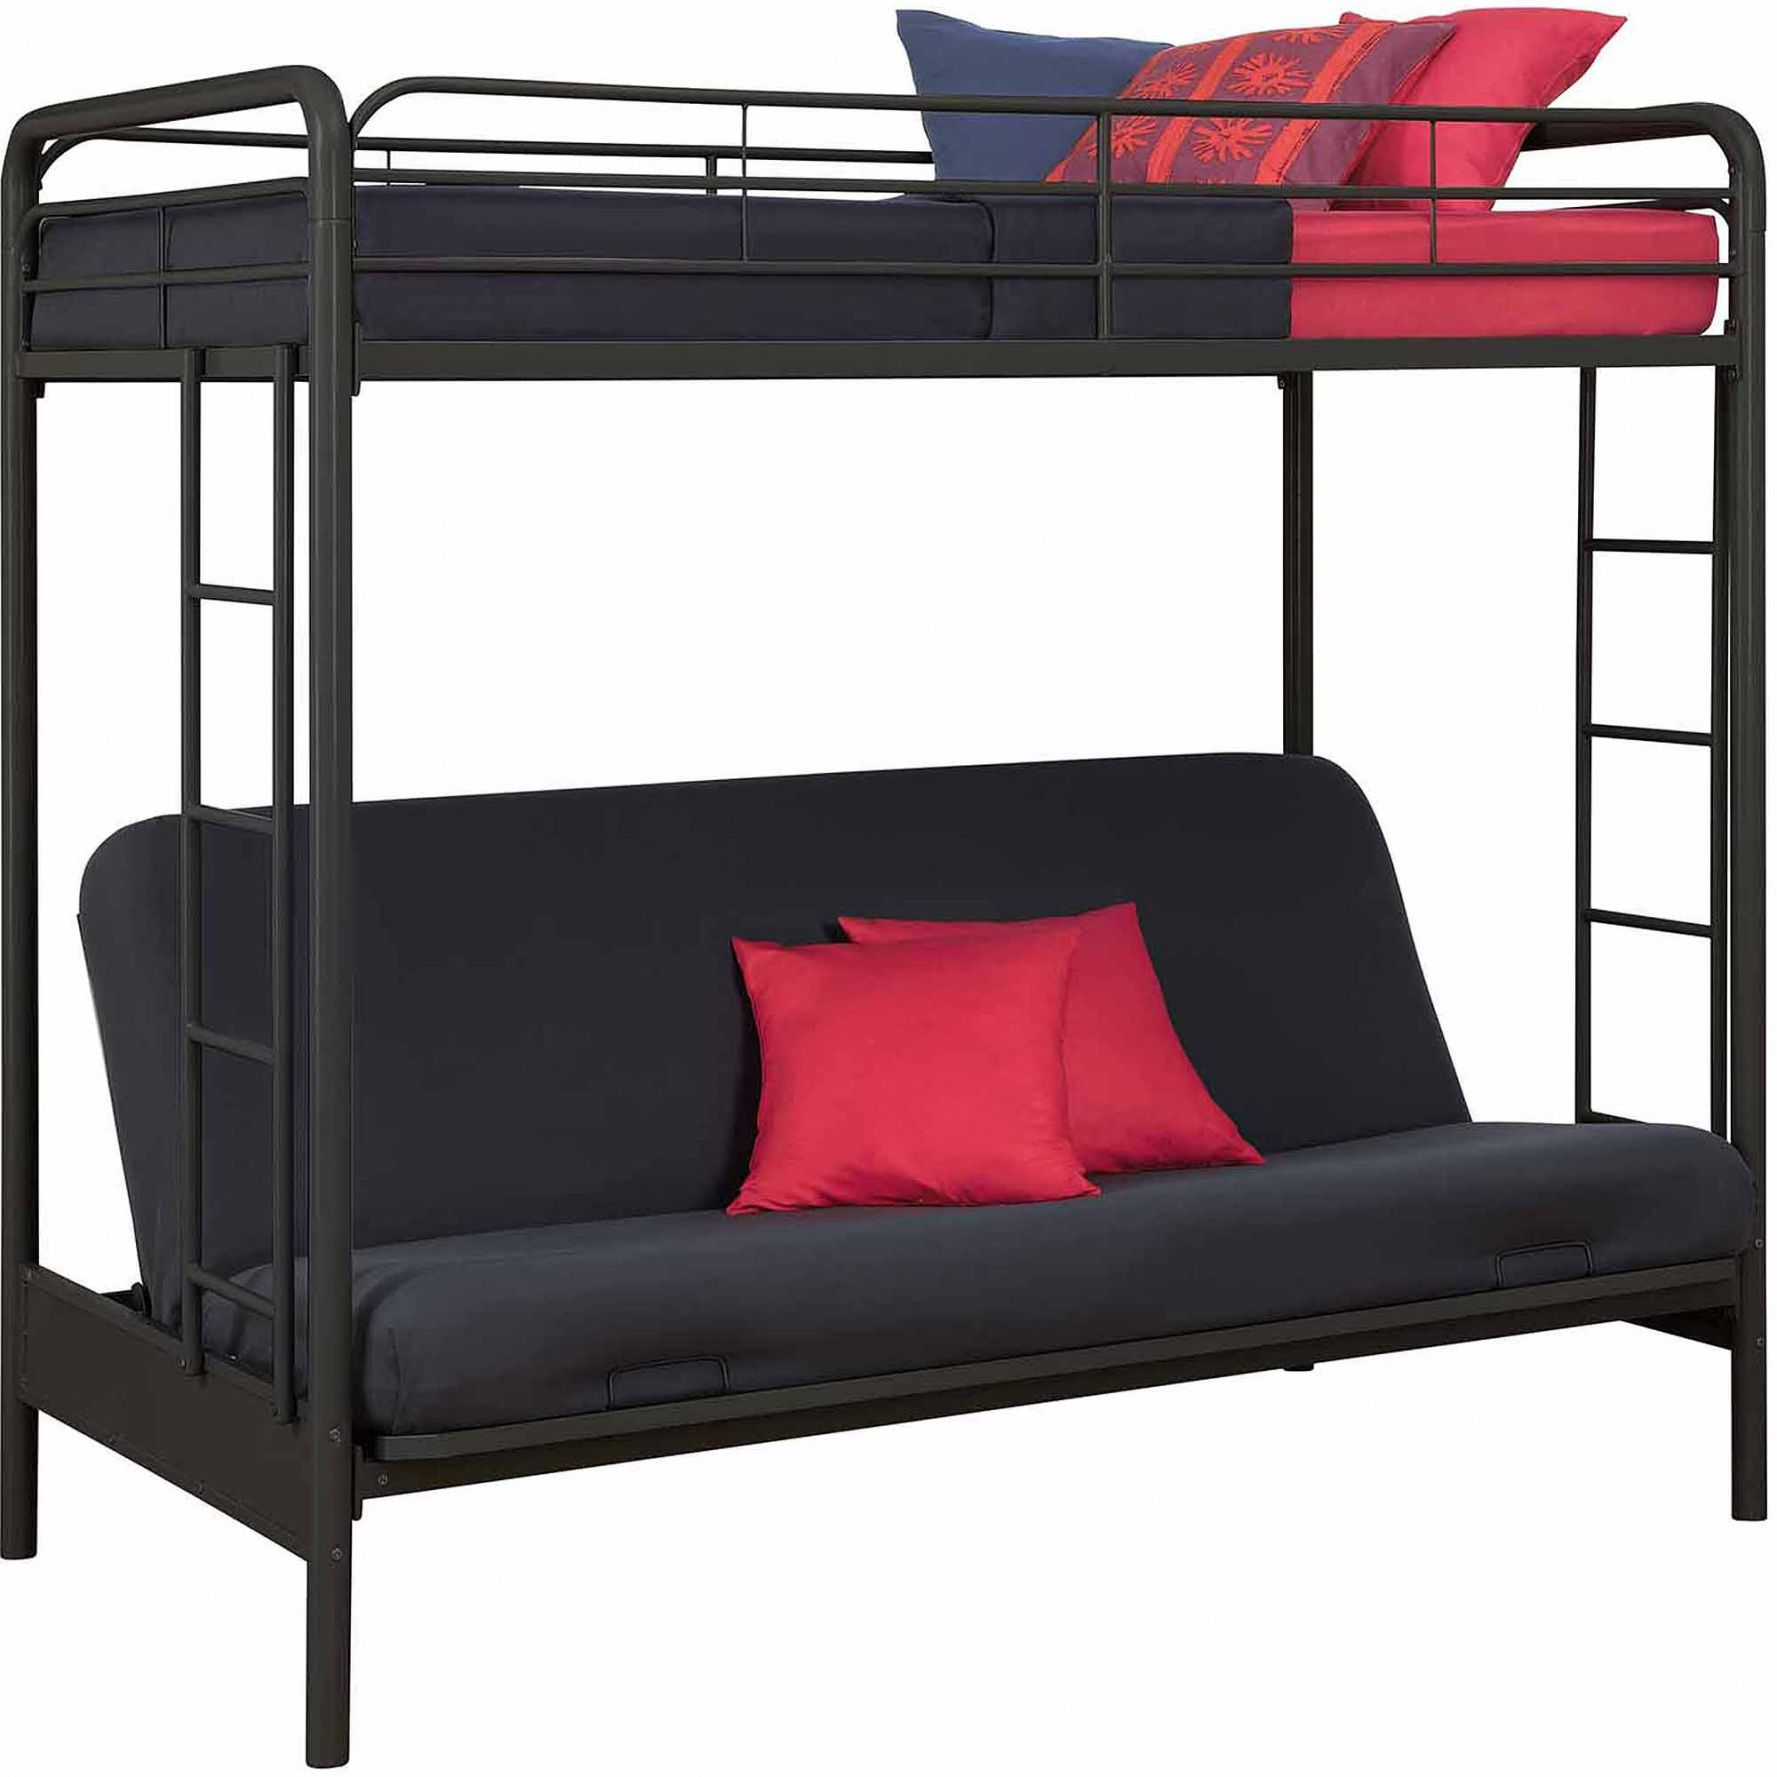 2018 Bunk Bed Futon Combo Interior Design Small Bedroom Check More